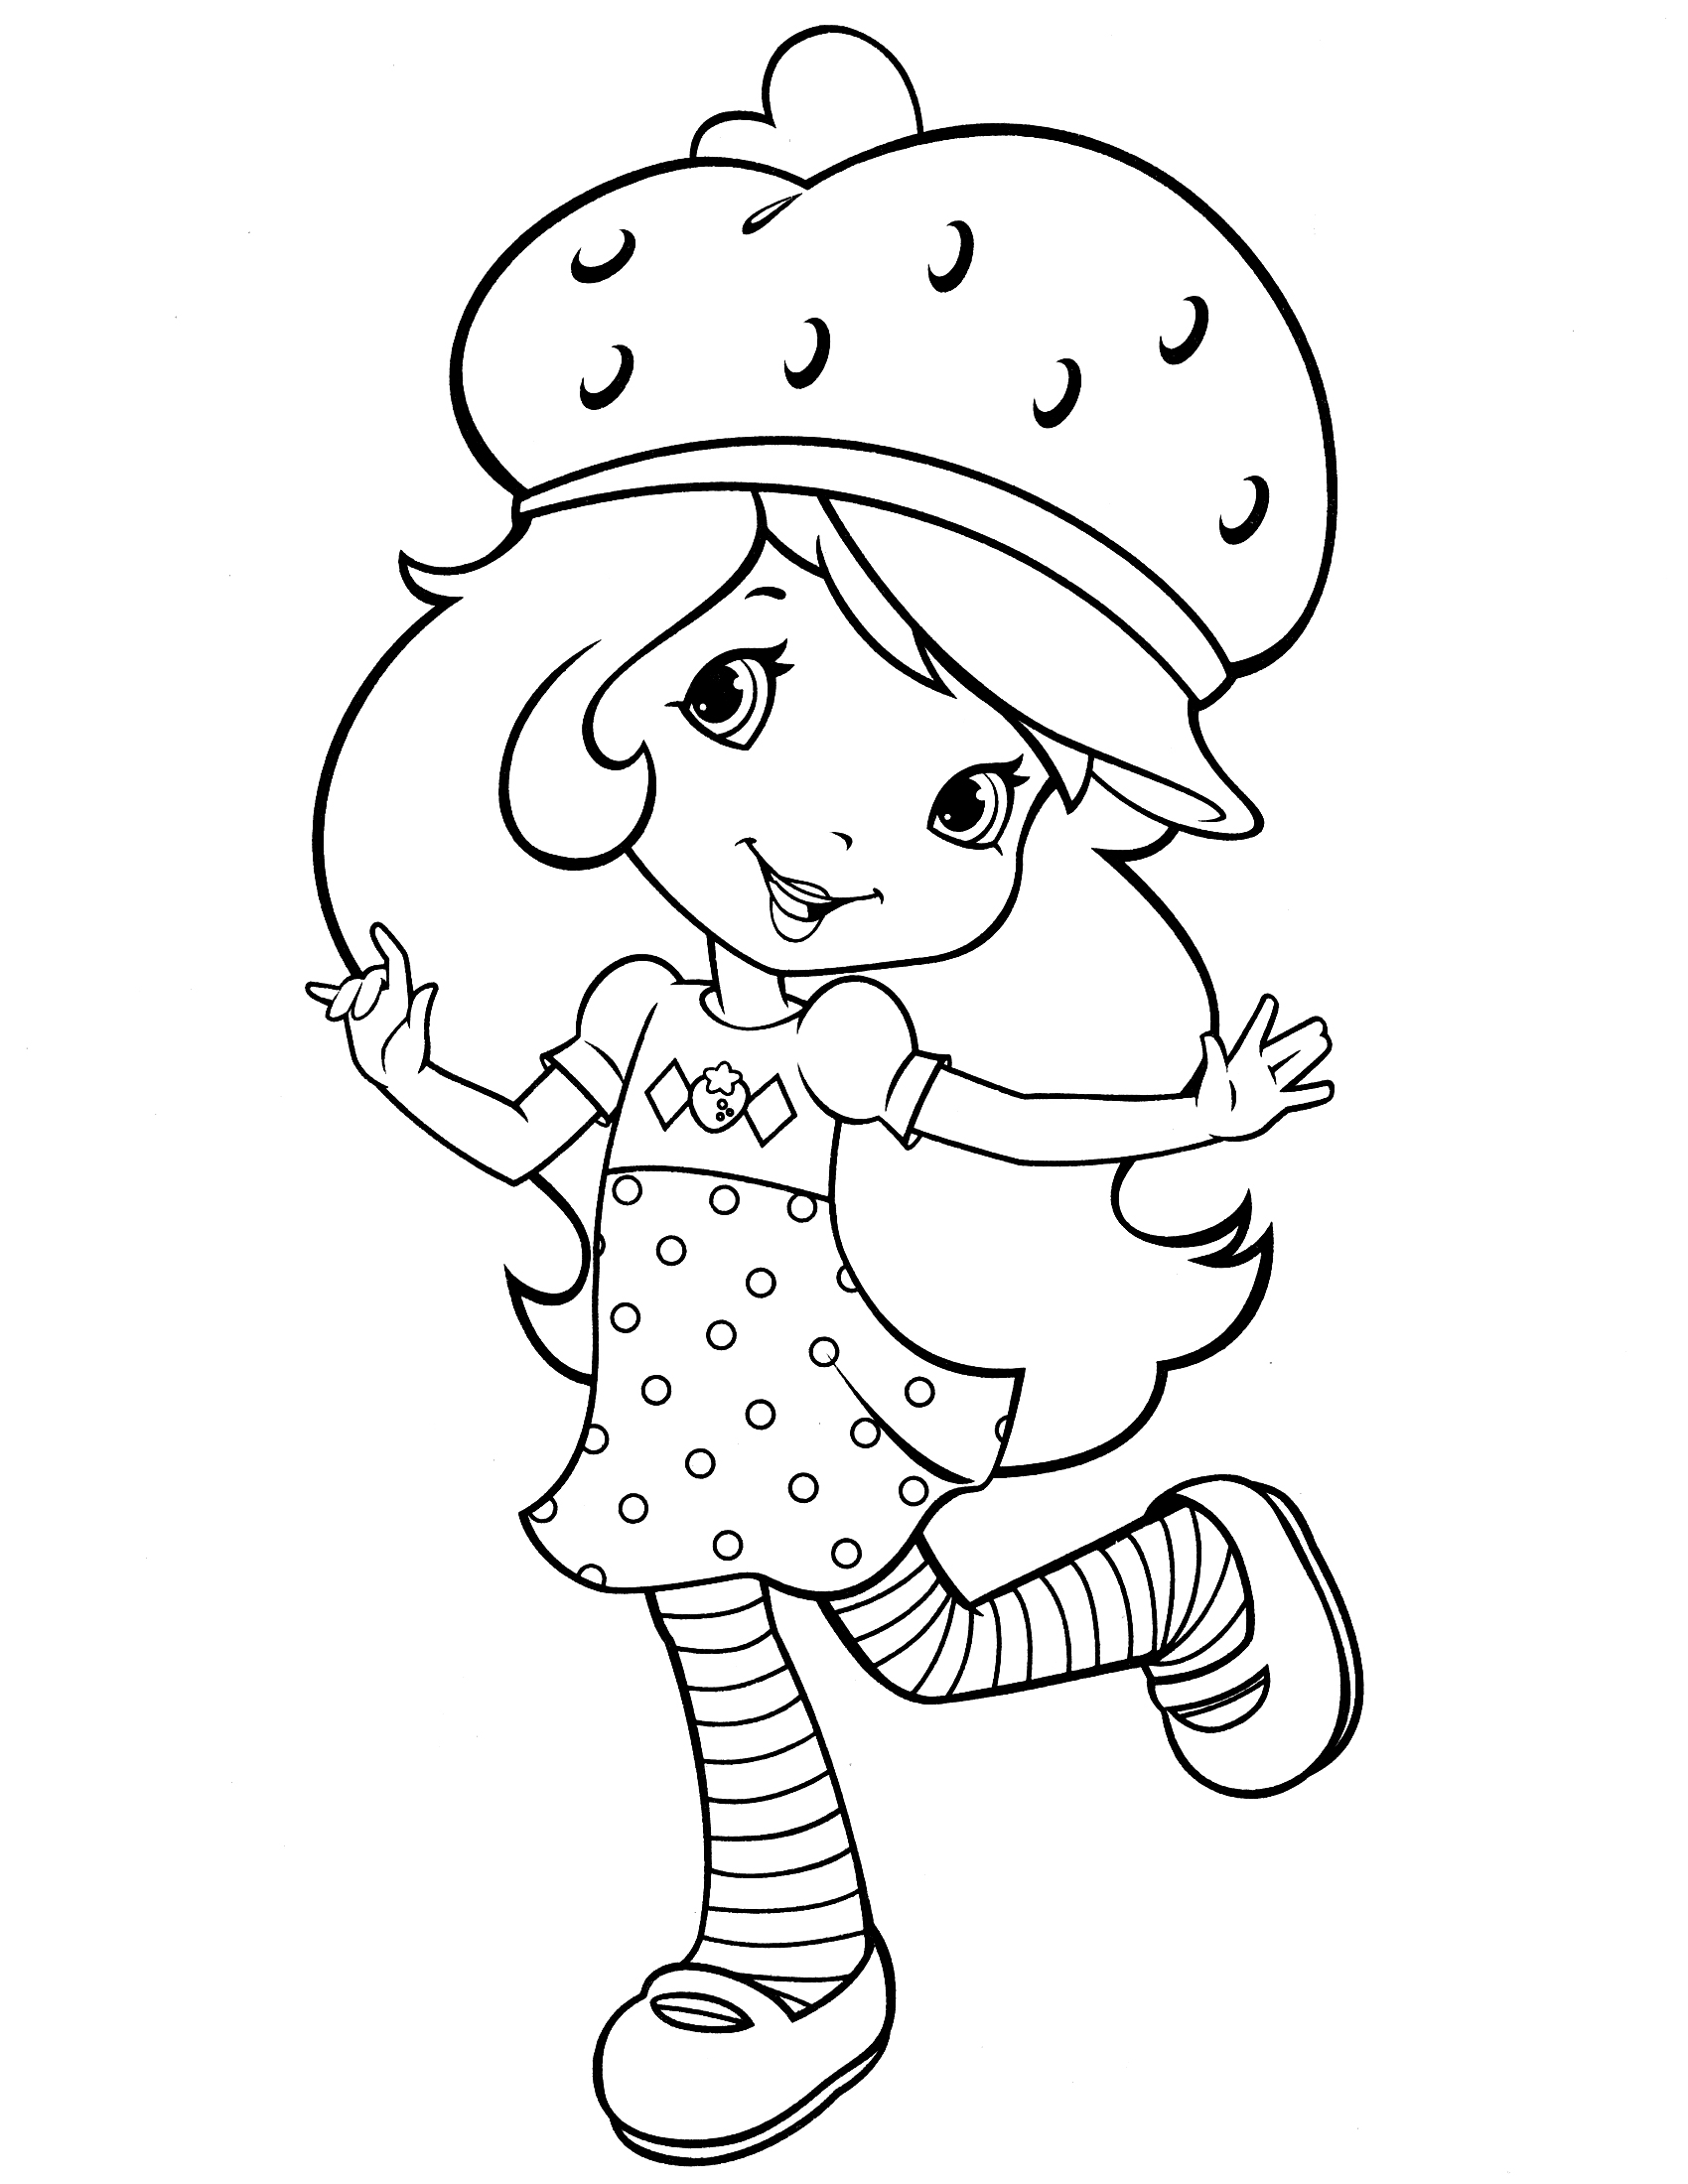 strawberry shortcake coloring pages for kids strawberry shortcake coloring pages coloring pages for kids pages for kids strawberry shortcake coloring